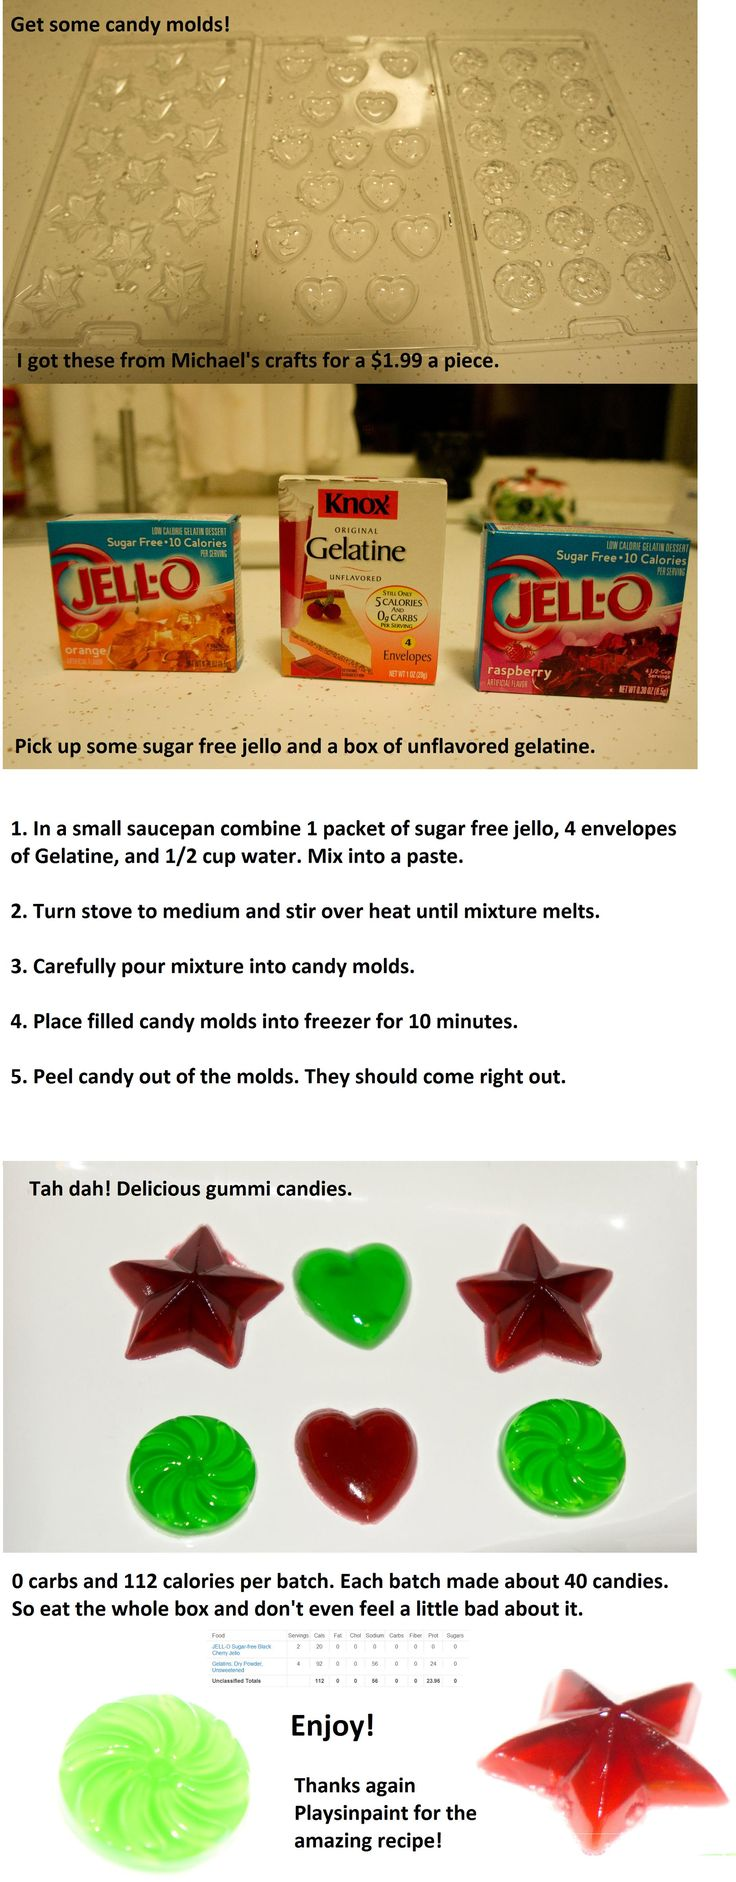 No-carb low calories gummy candy! I would pour in a jelly roll pan and cut in little squares.  Much easier.